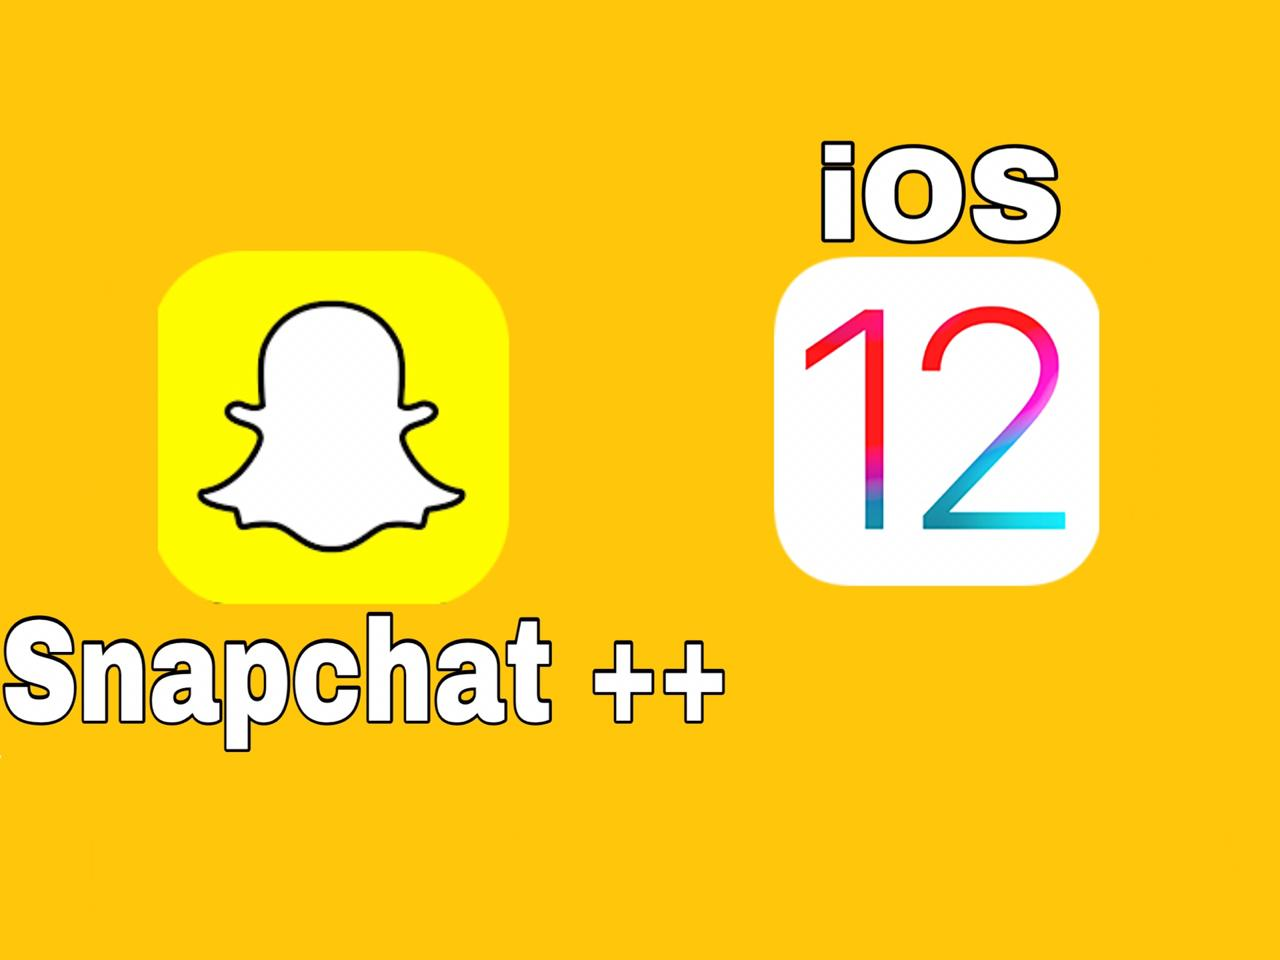 Snapchat ++ iOS 12 Download (Tweaked Snapchat)